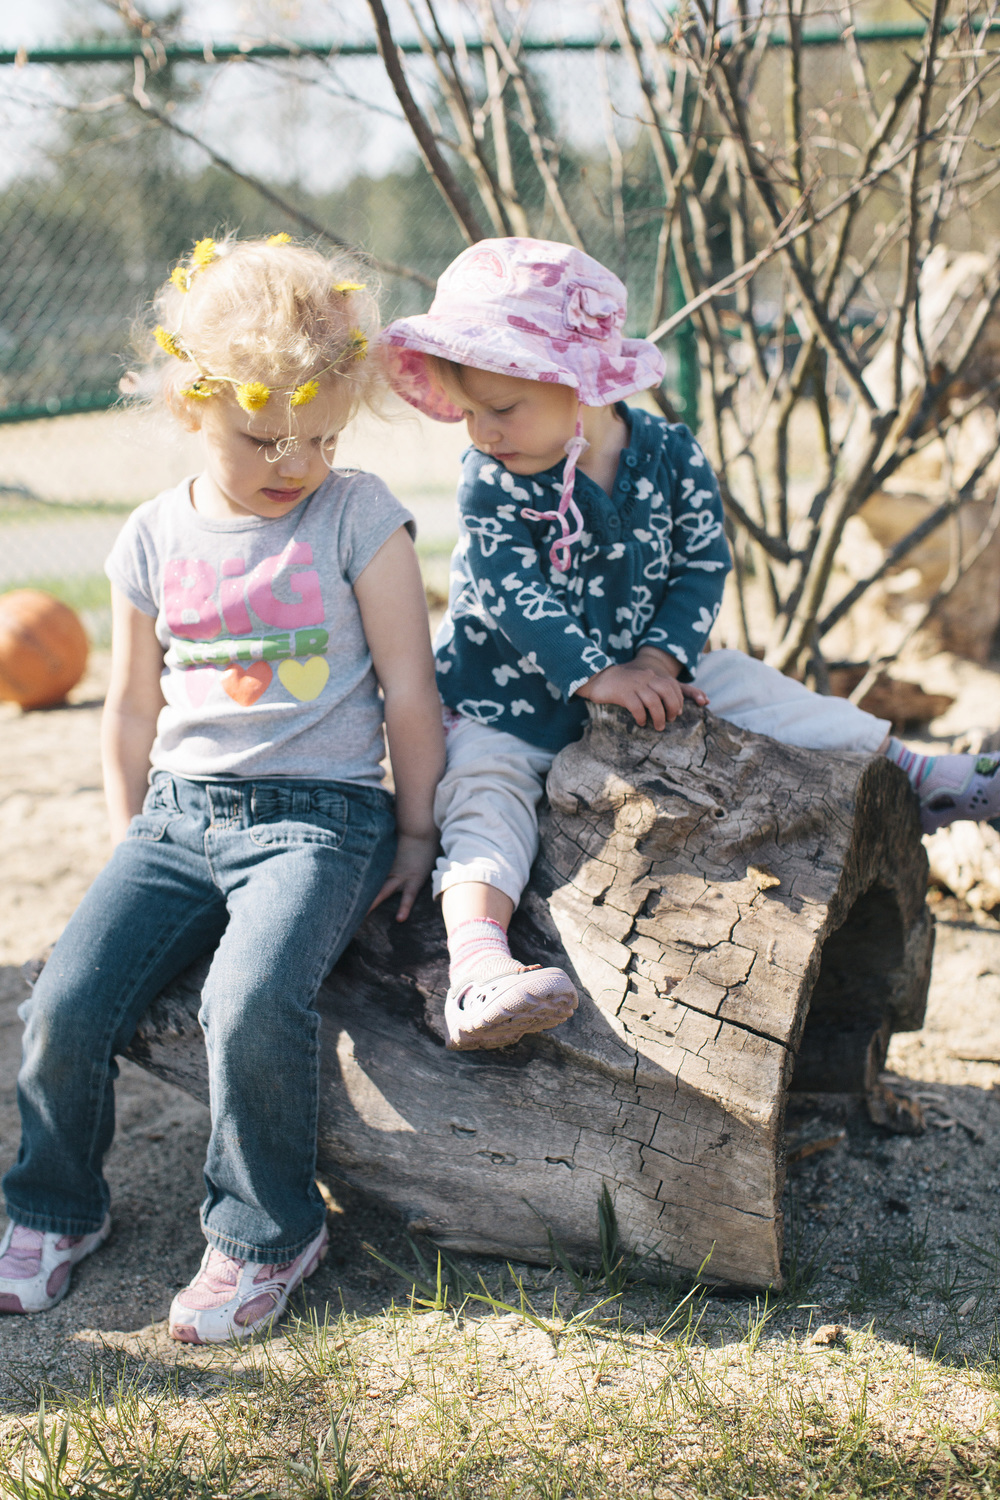 Toddlers sitting log 0011.jpg